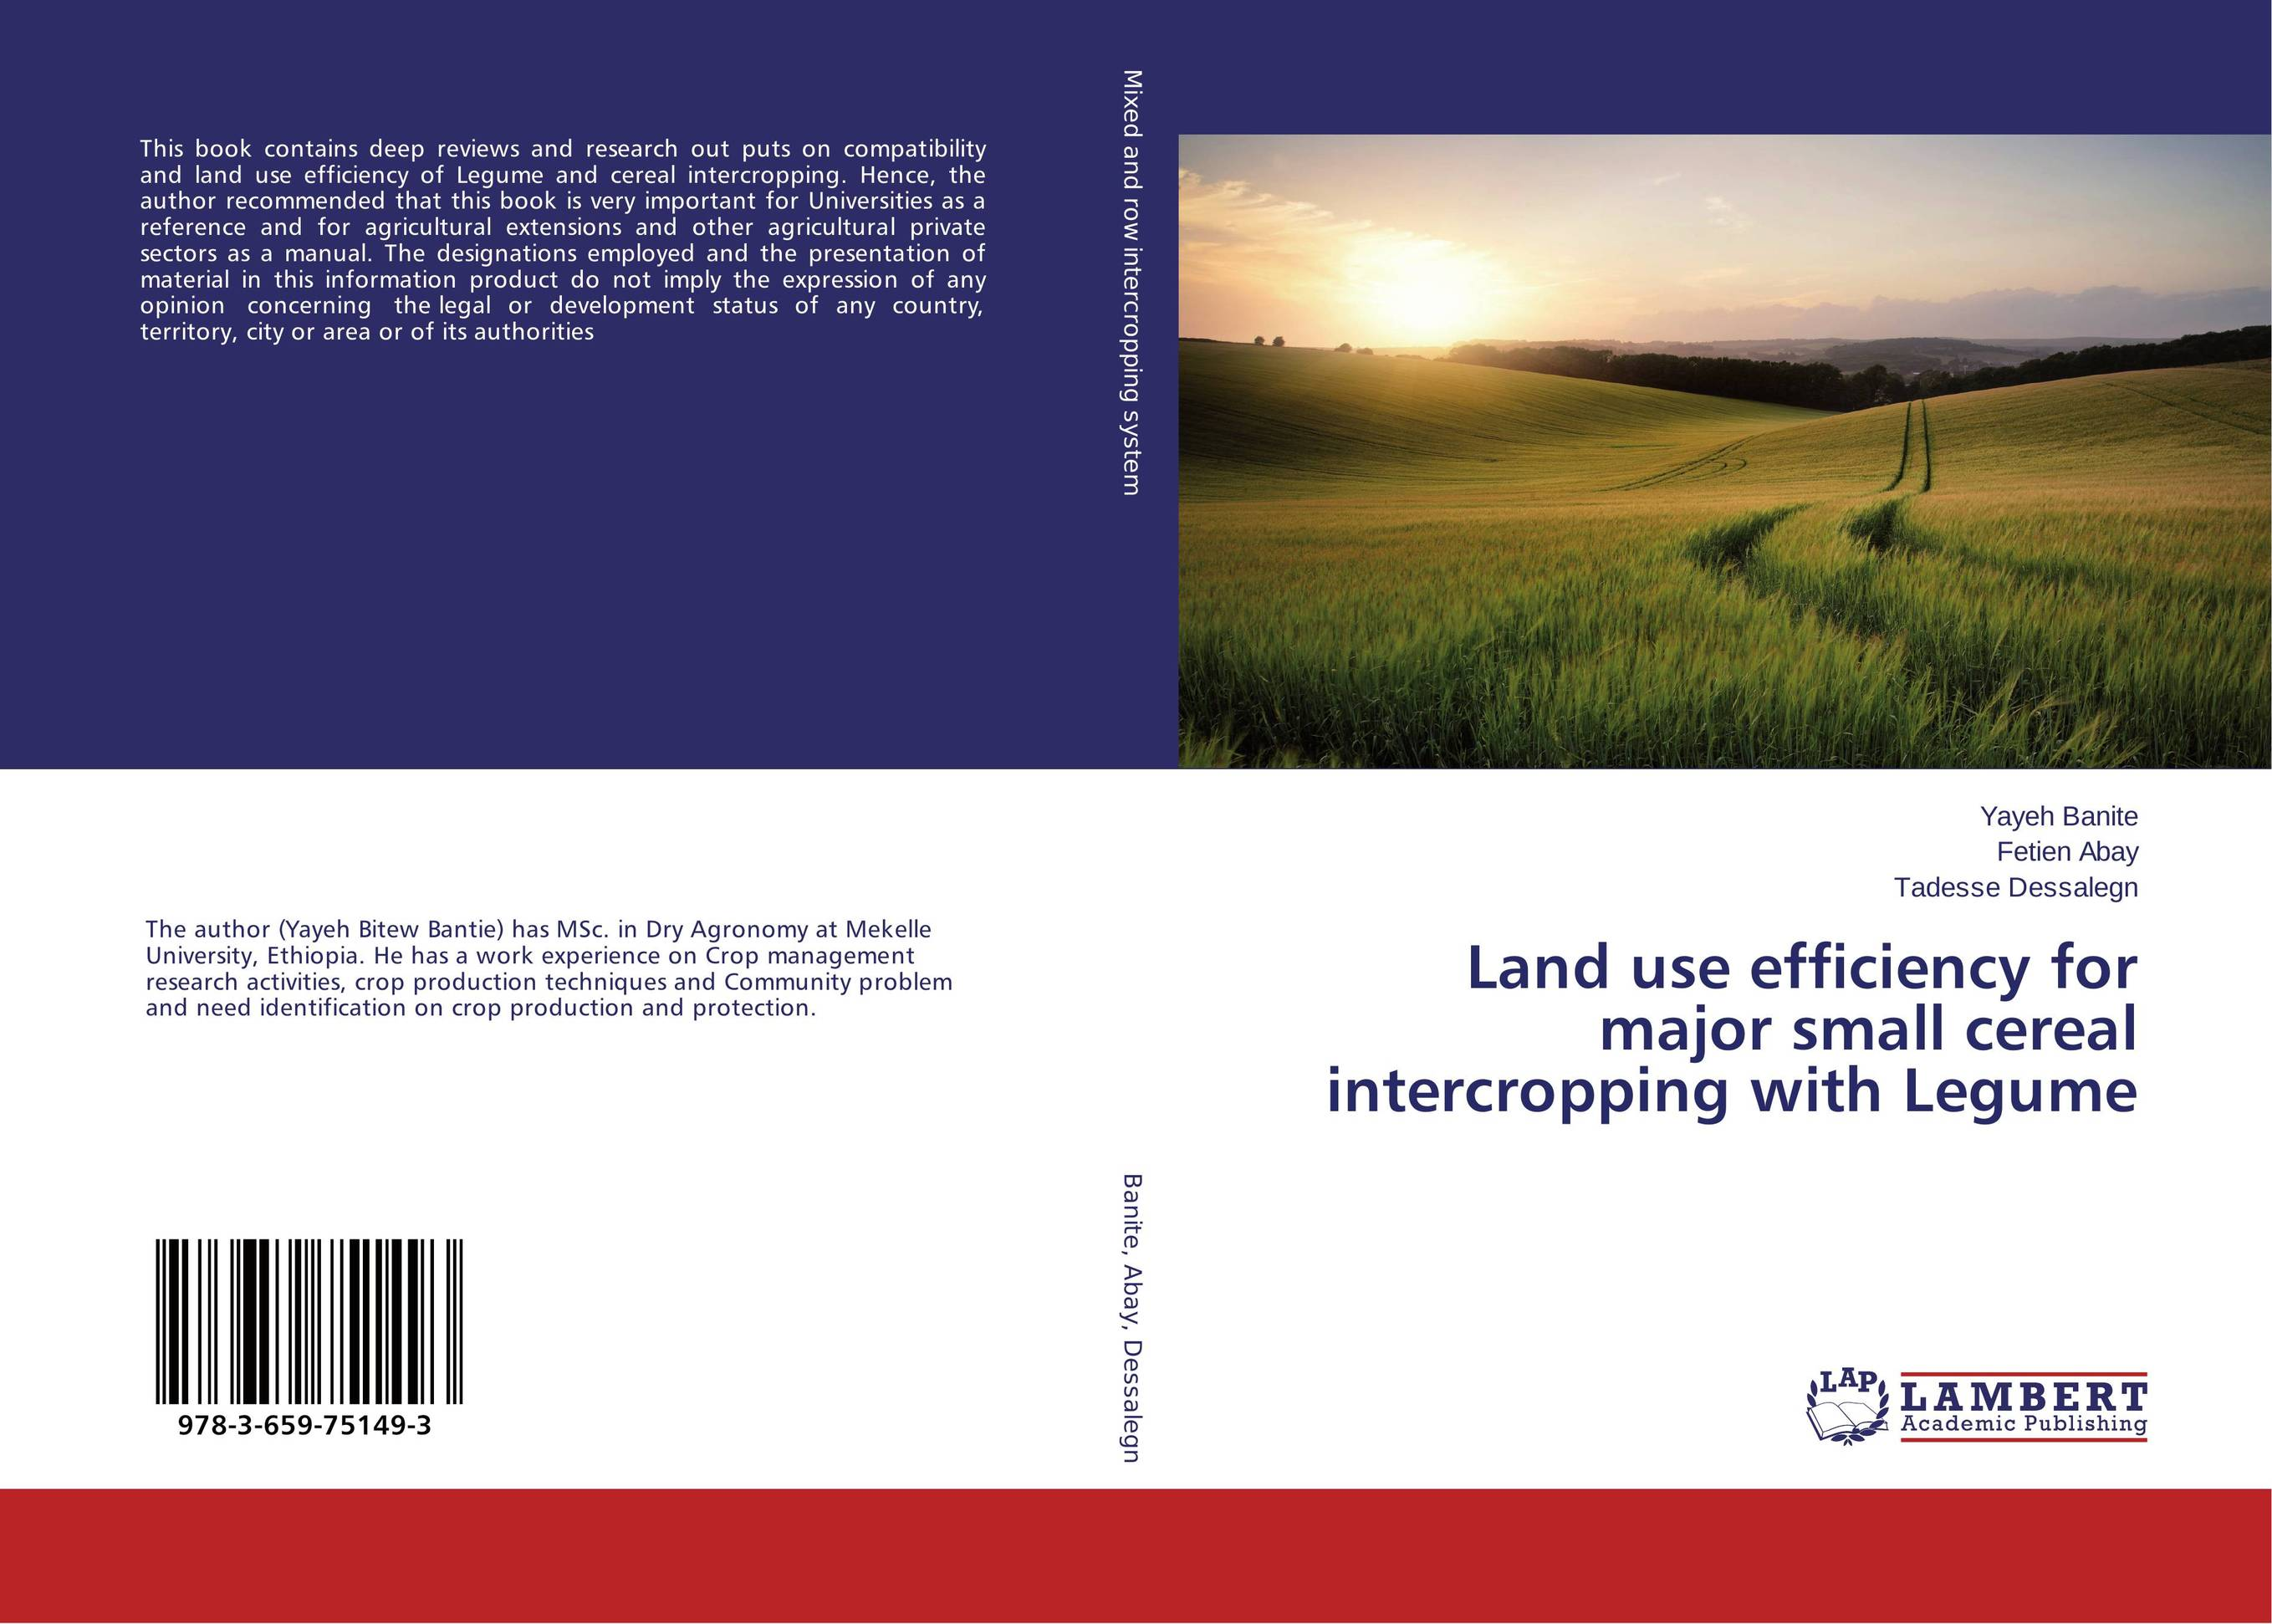 Land use efficiency for major small cereal intercropping with Legume land use information system